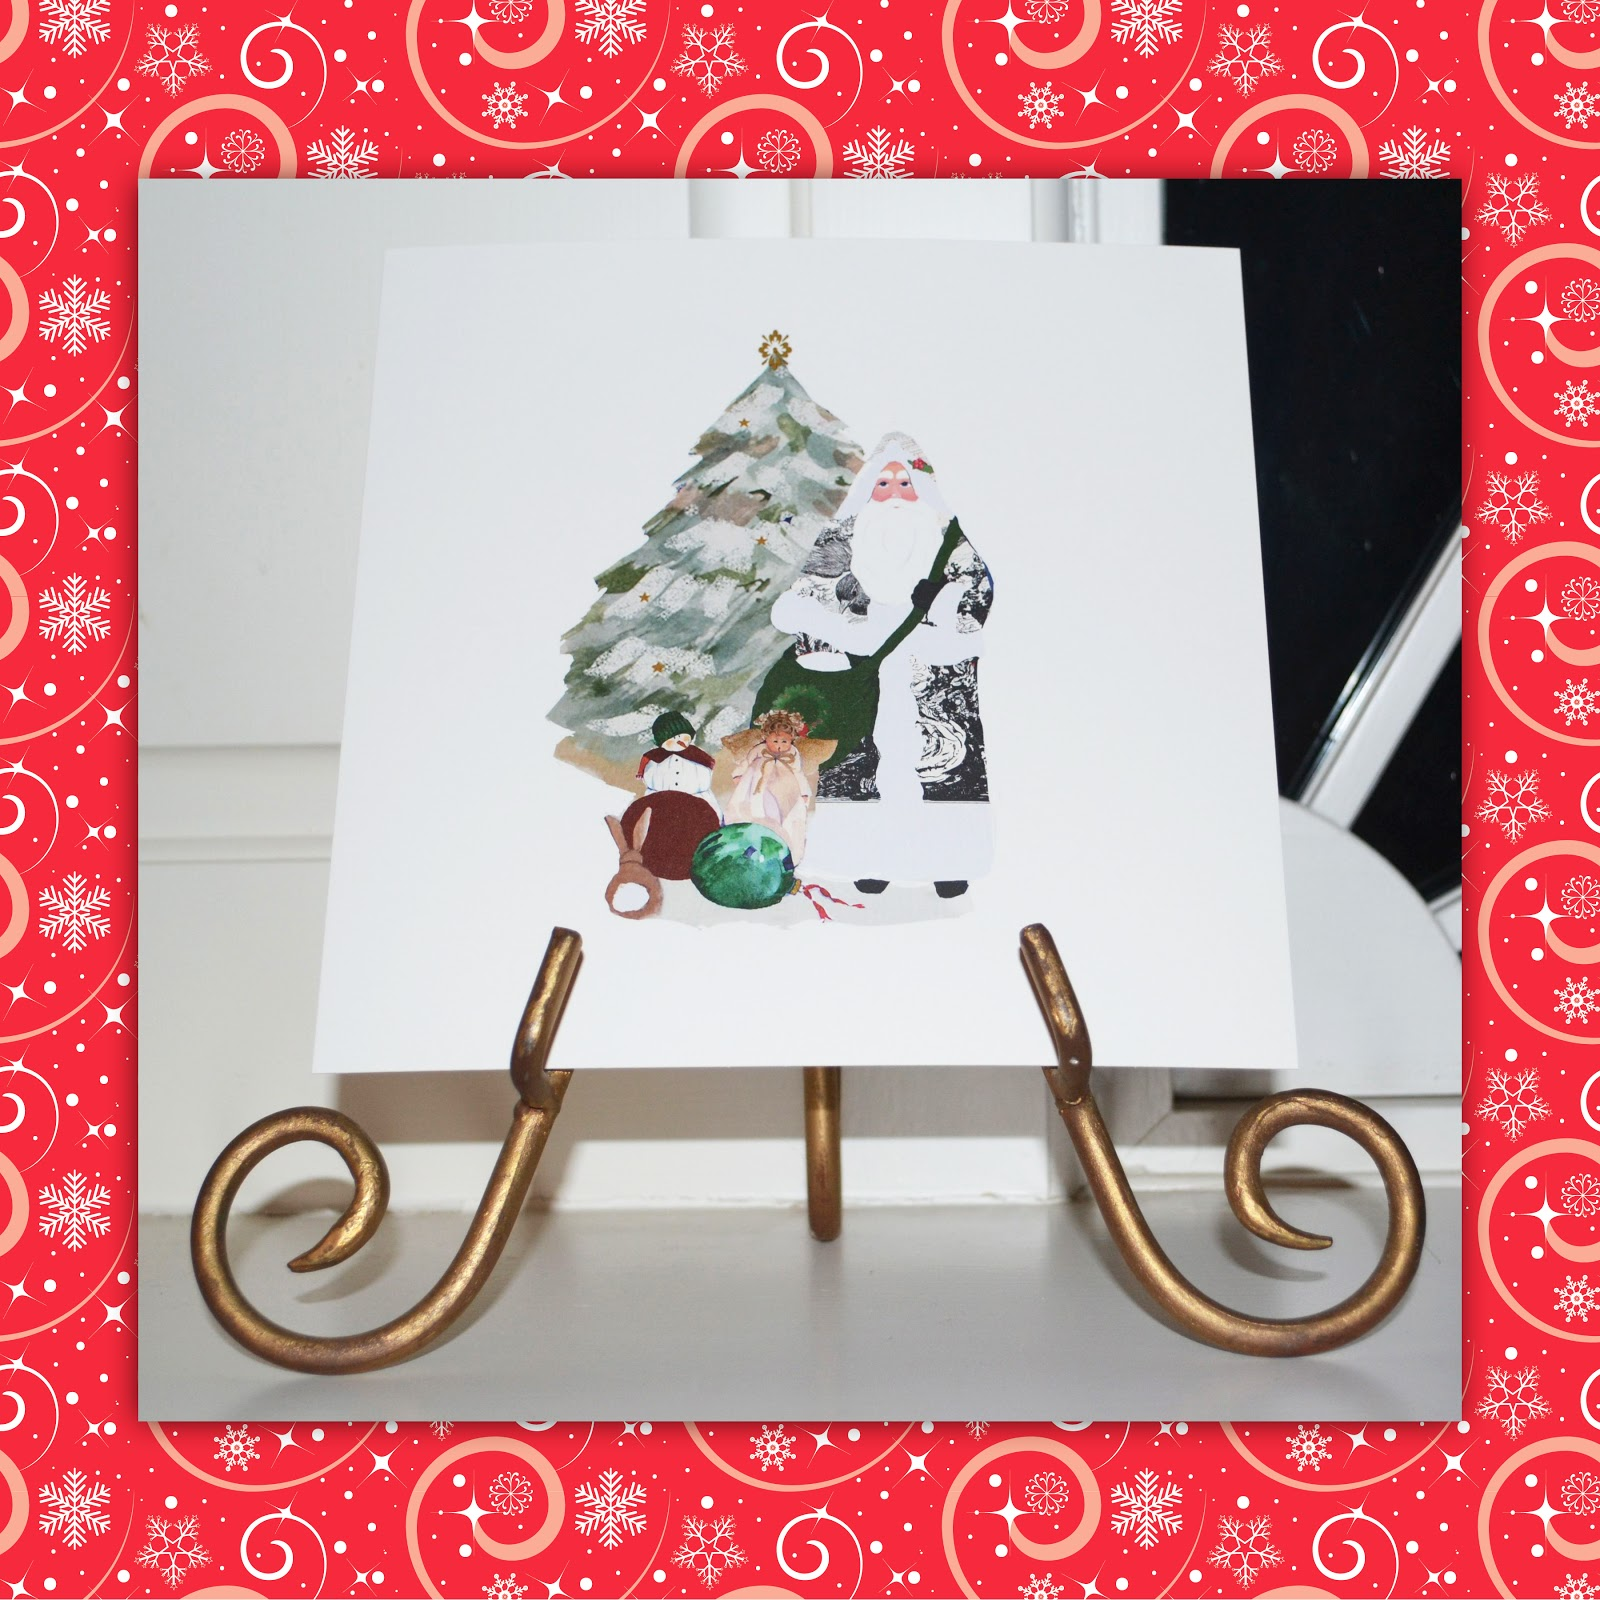 A SCRAPBOOK OF INSPIRATION: A Christmas gift for you